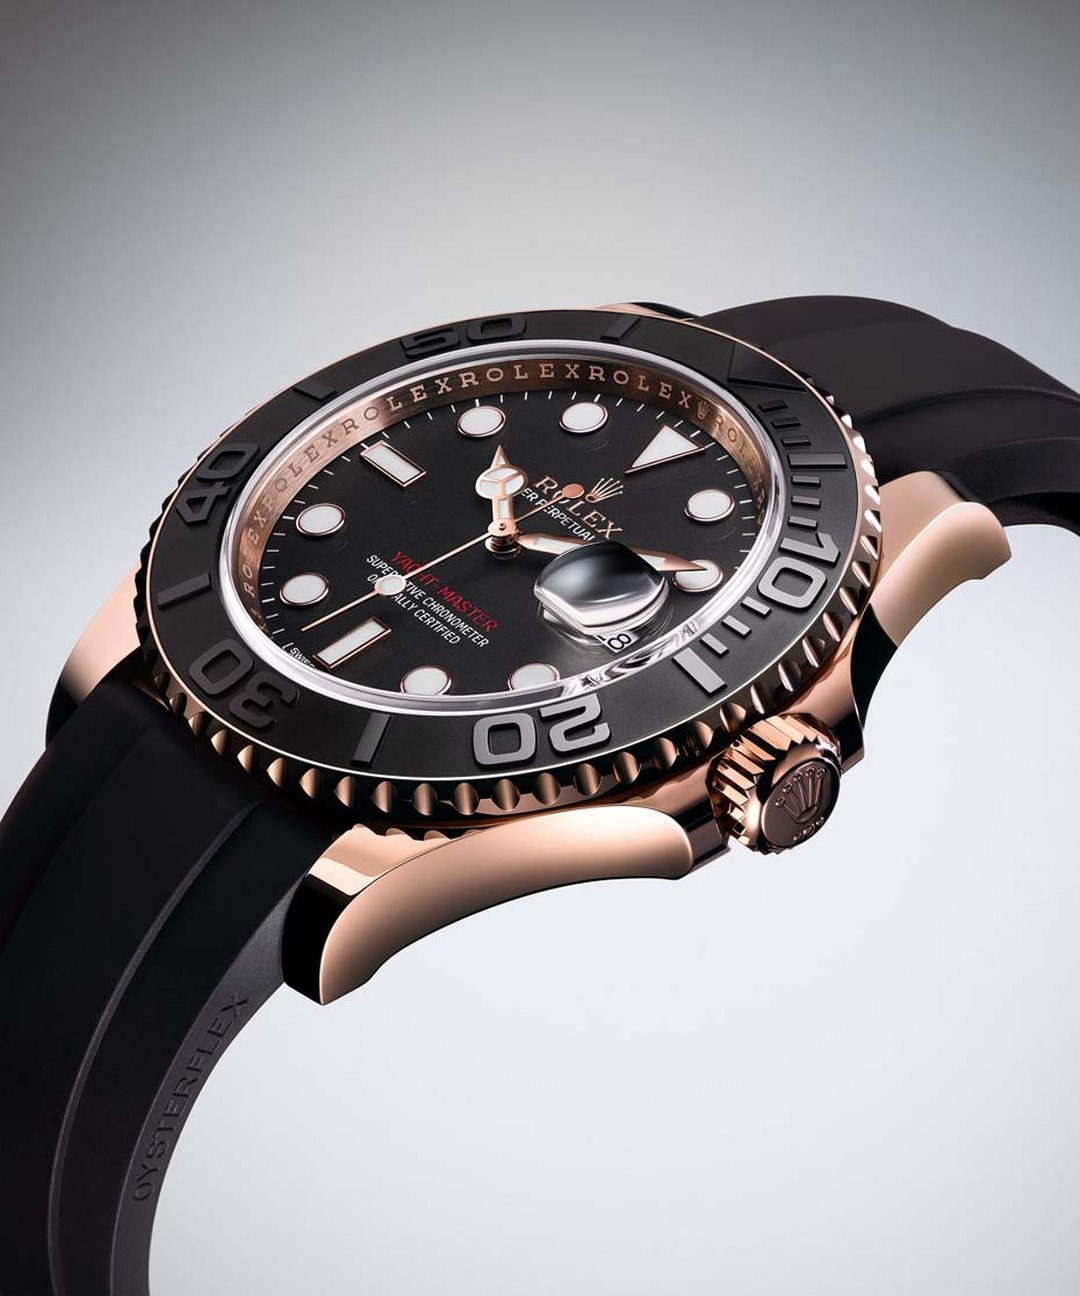 Rolex's new Yacht-Master 40mm watch comes on an innovative Oysterflex bracelet, a resilient and sporty alternative to the traditional metal bracelet. The high-tech strap is made from blades of flexible metal, which are covered in black elastomer for enhan